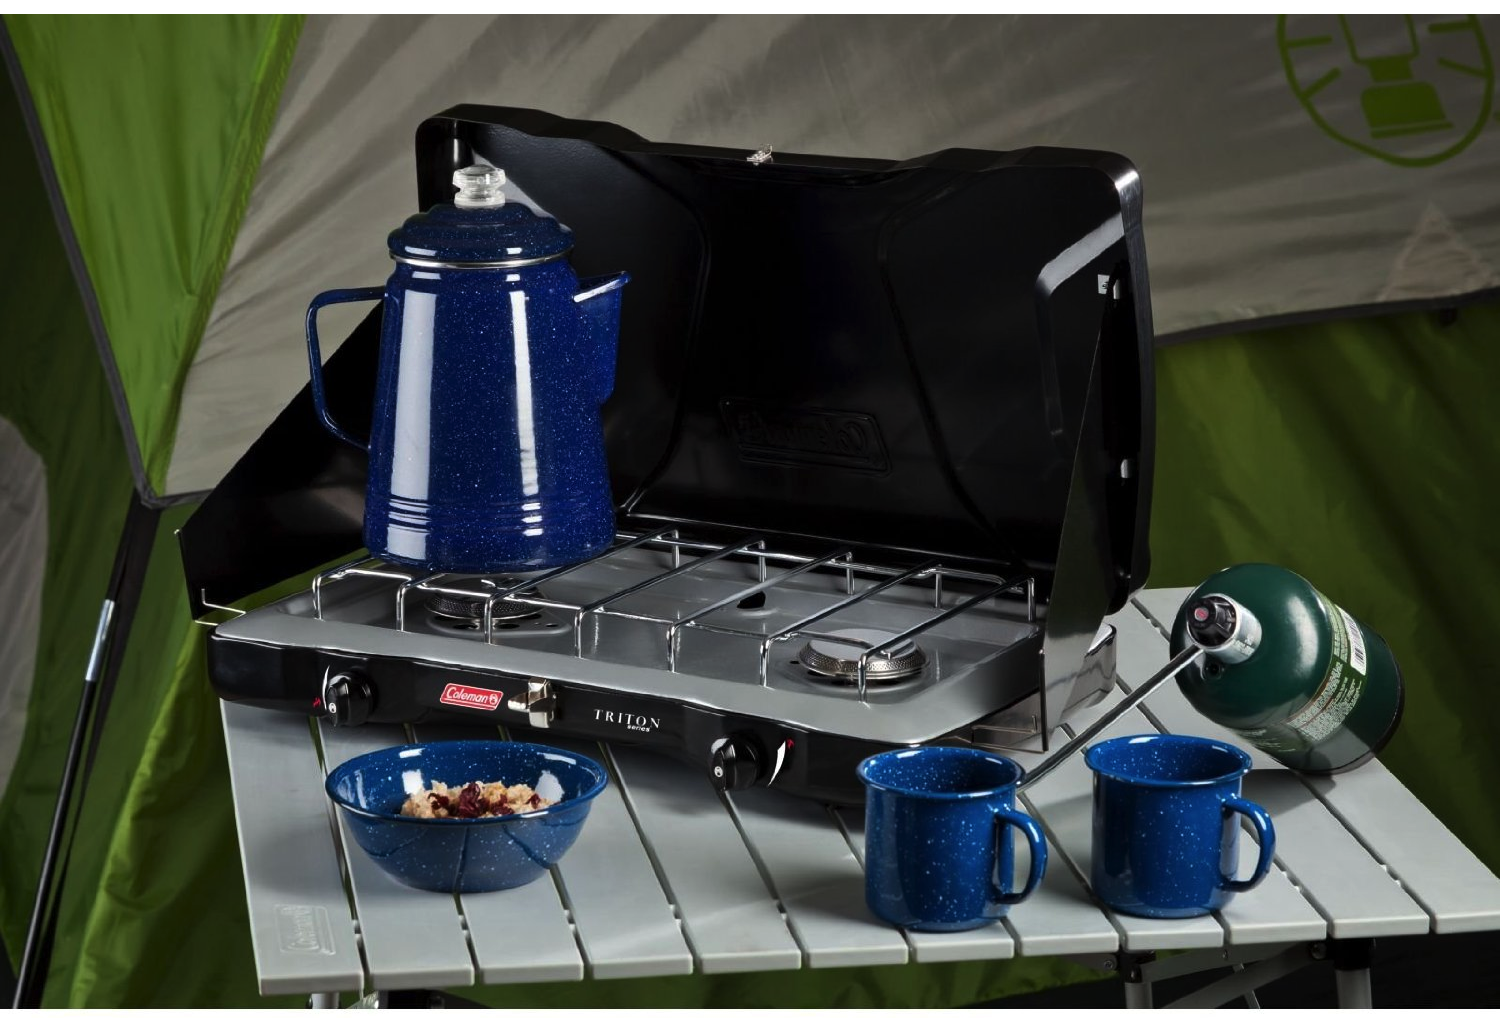 Insta-Start Your Fun Cooking With Coleman Camping Stove